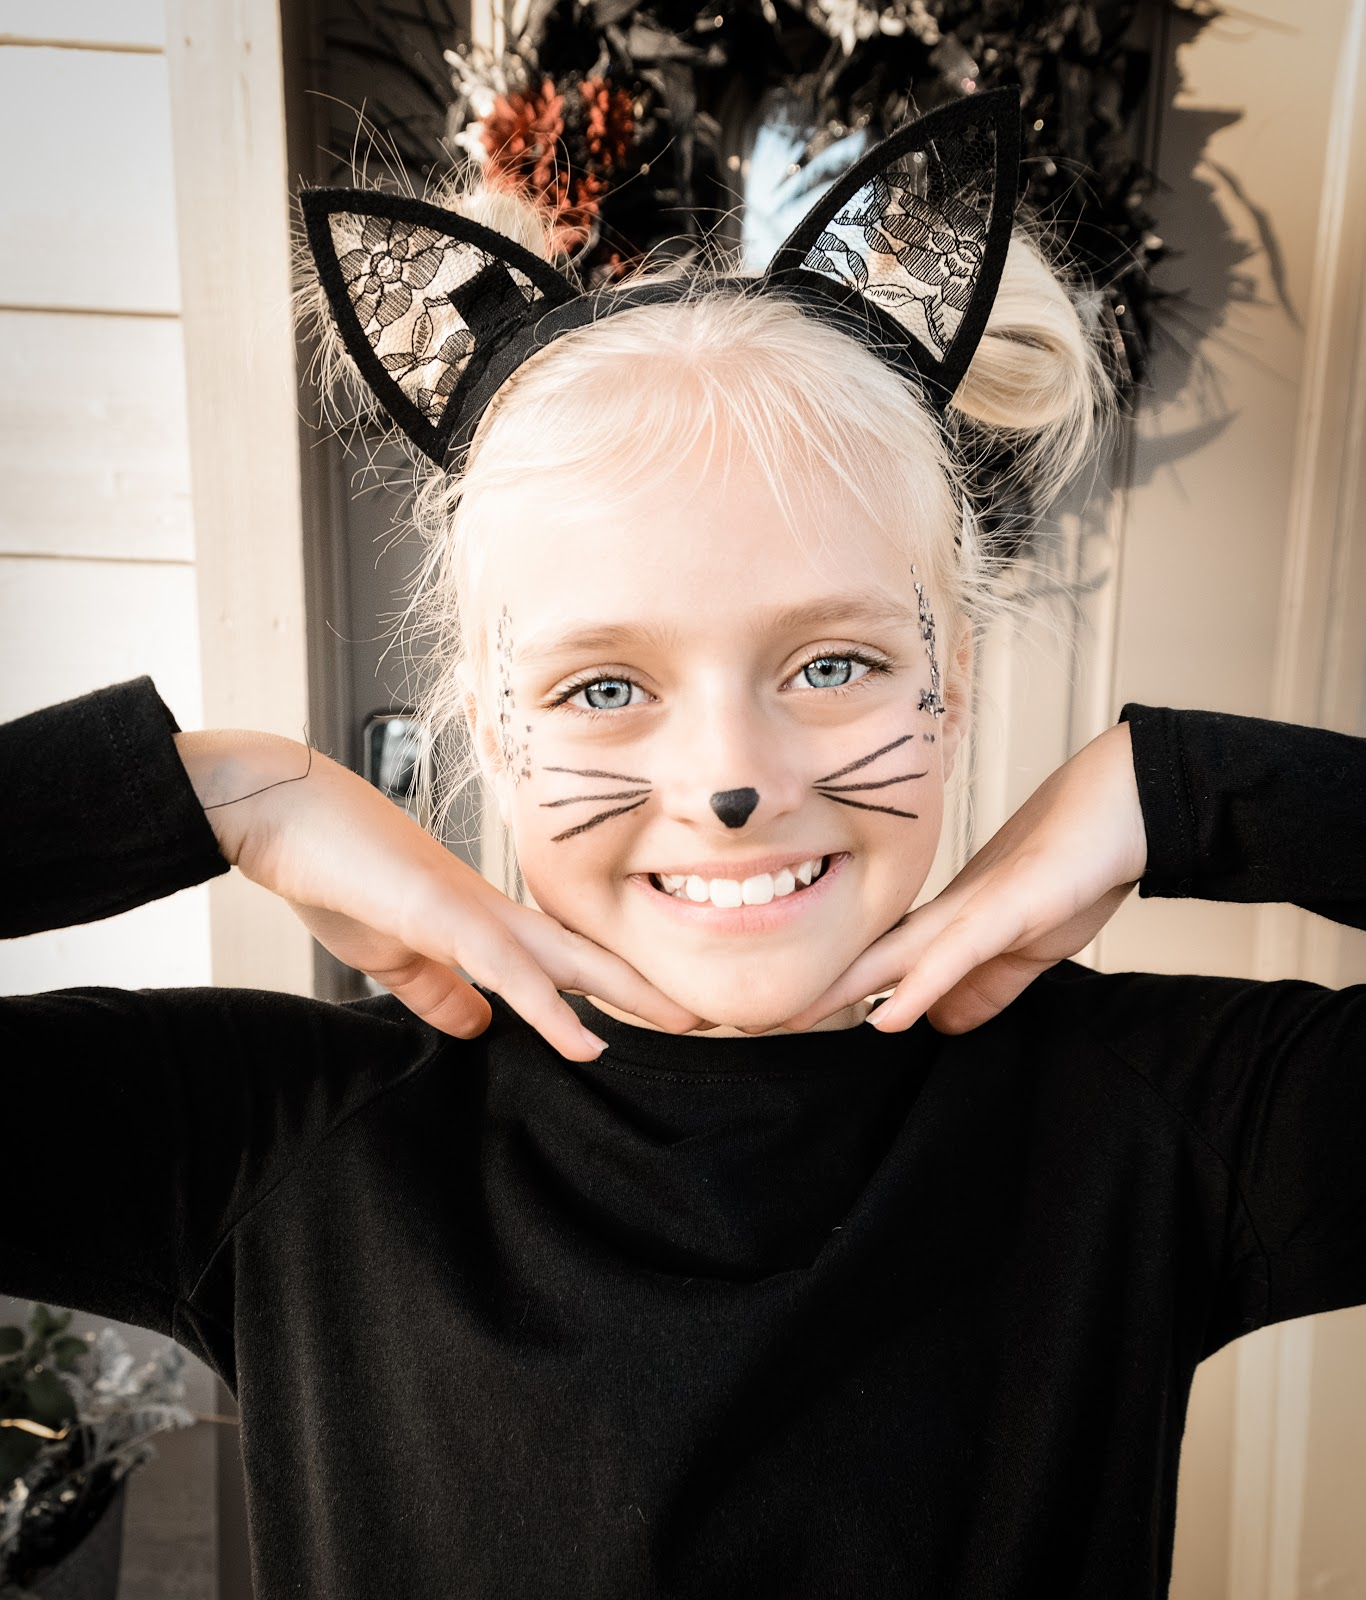 Easy Black Cat Costume - Adorable & Affordable Kitty Costume! Last Minute Halloween Costume Kids Costume Simple Easy Kitty Cat Costume Cosplay Meow Black Cat Halloween Cat Ears Cat Tail Target Target Costume Target Find DIY Costume Home Made